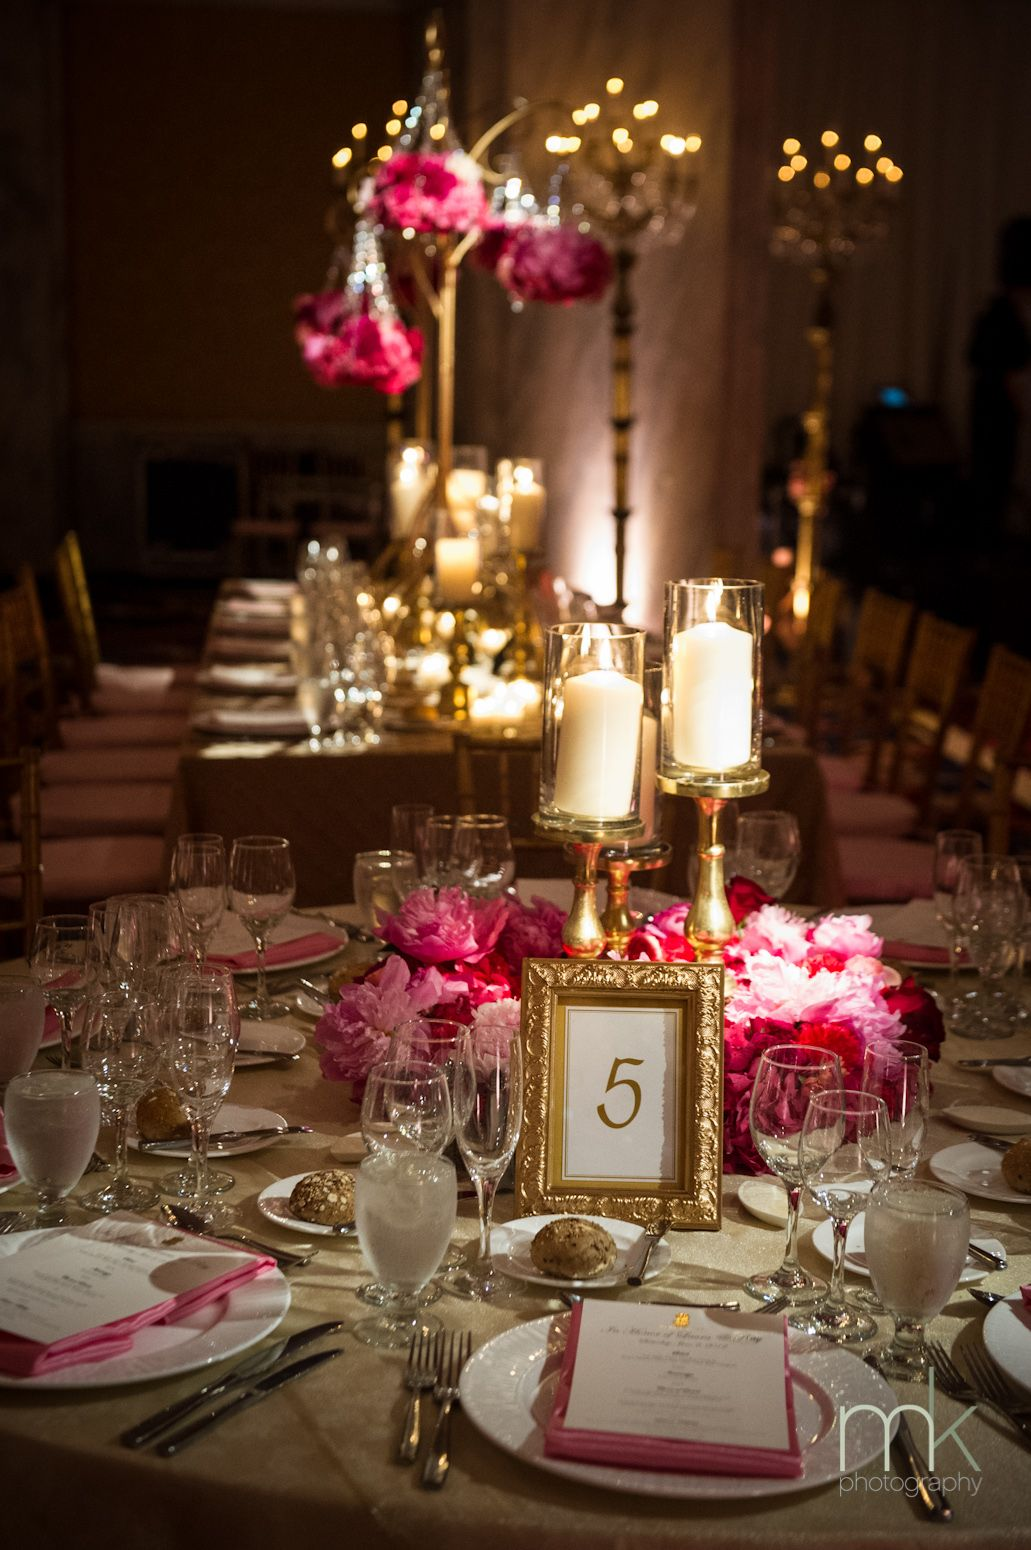 Beautiful blooms ritz carlton philadelphia pink and gold wedding beautiful blooms ritz carlton philadelphia pink and gold wedding pillar candle wreath centerpiece junglespirit Image collections